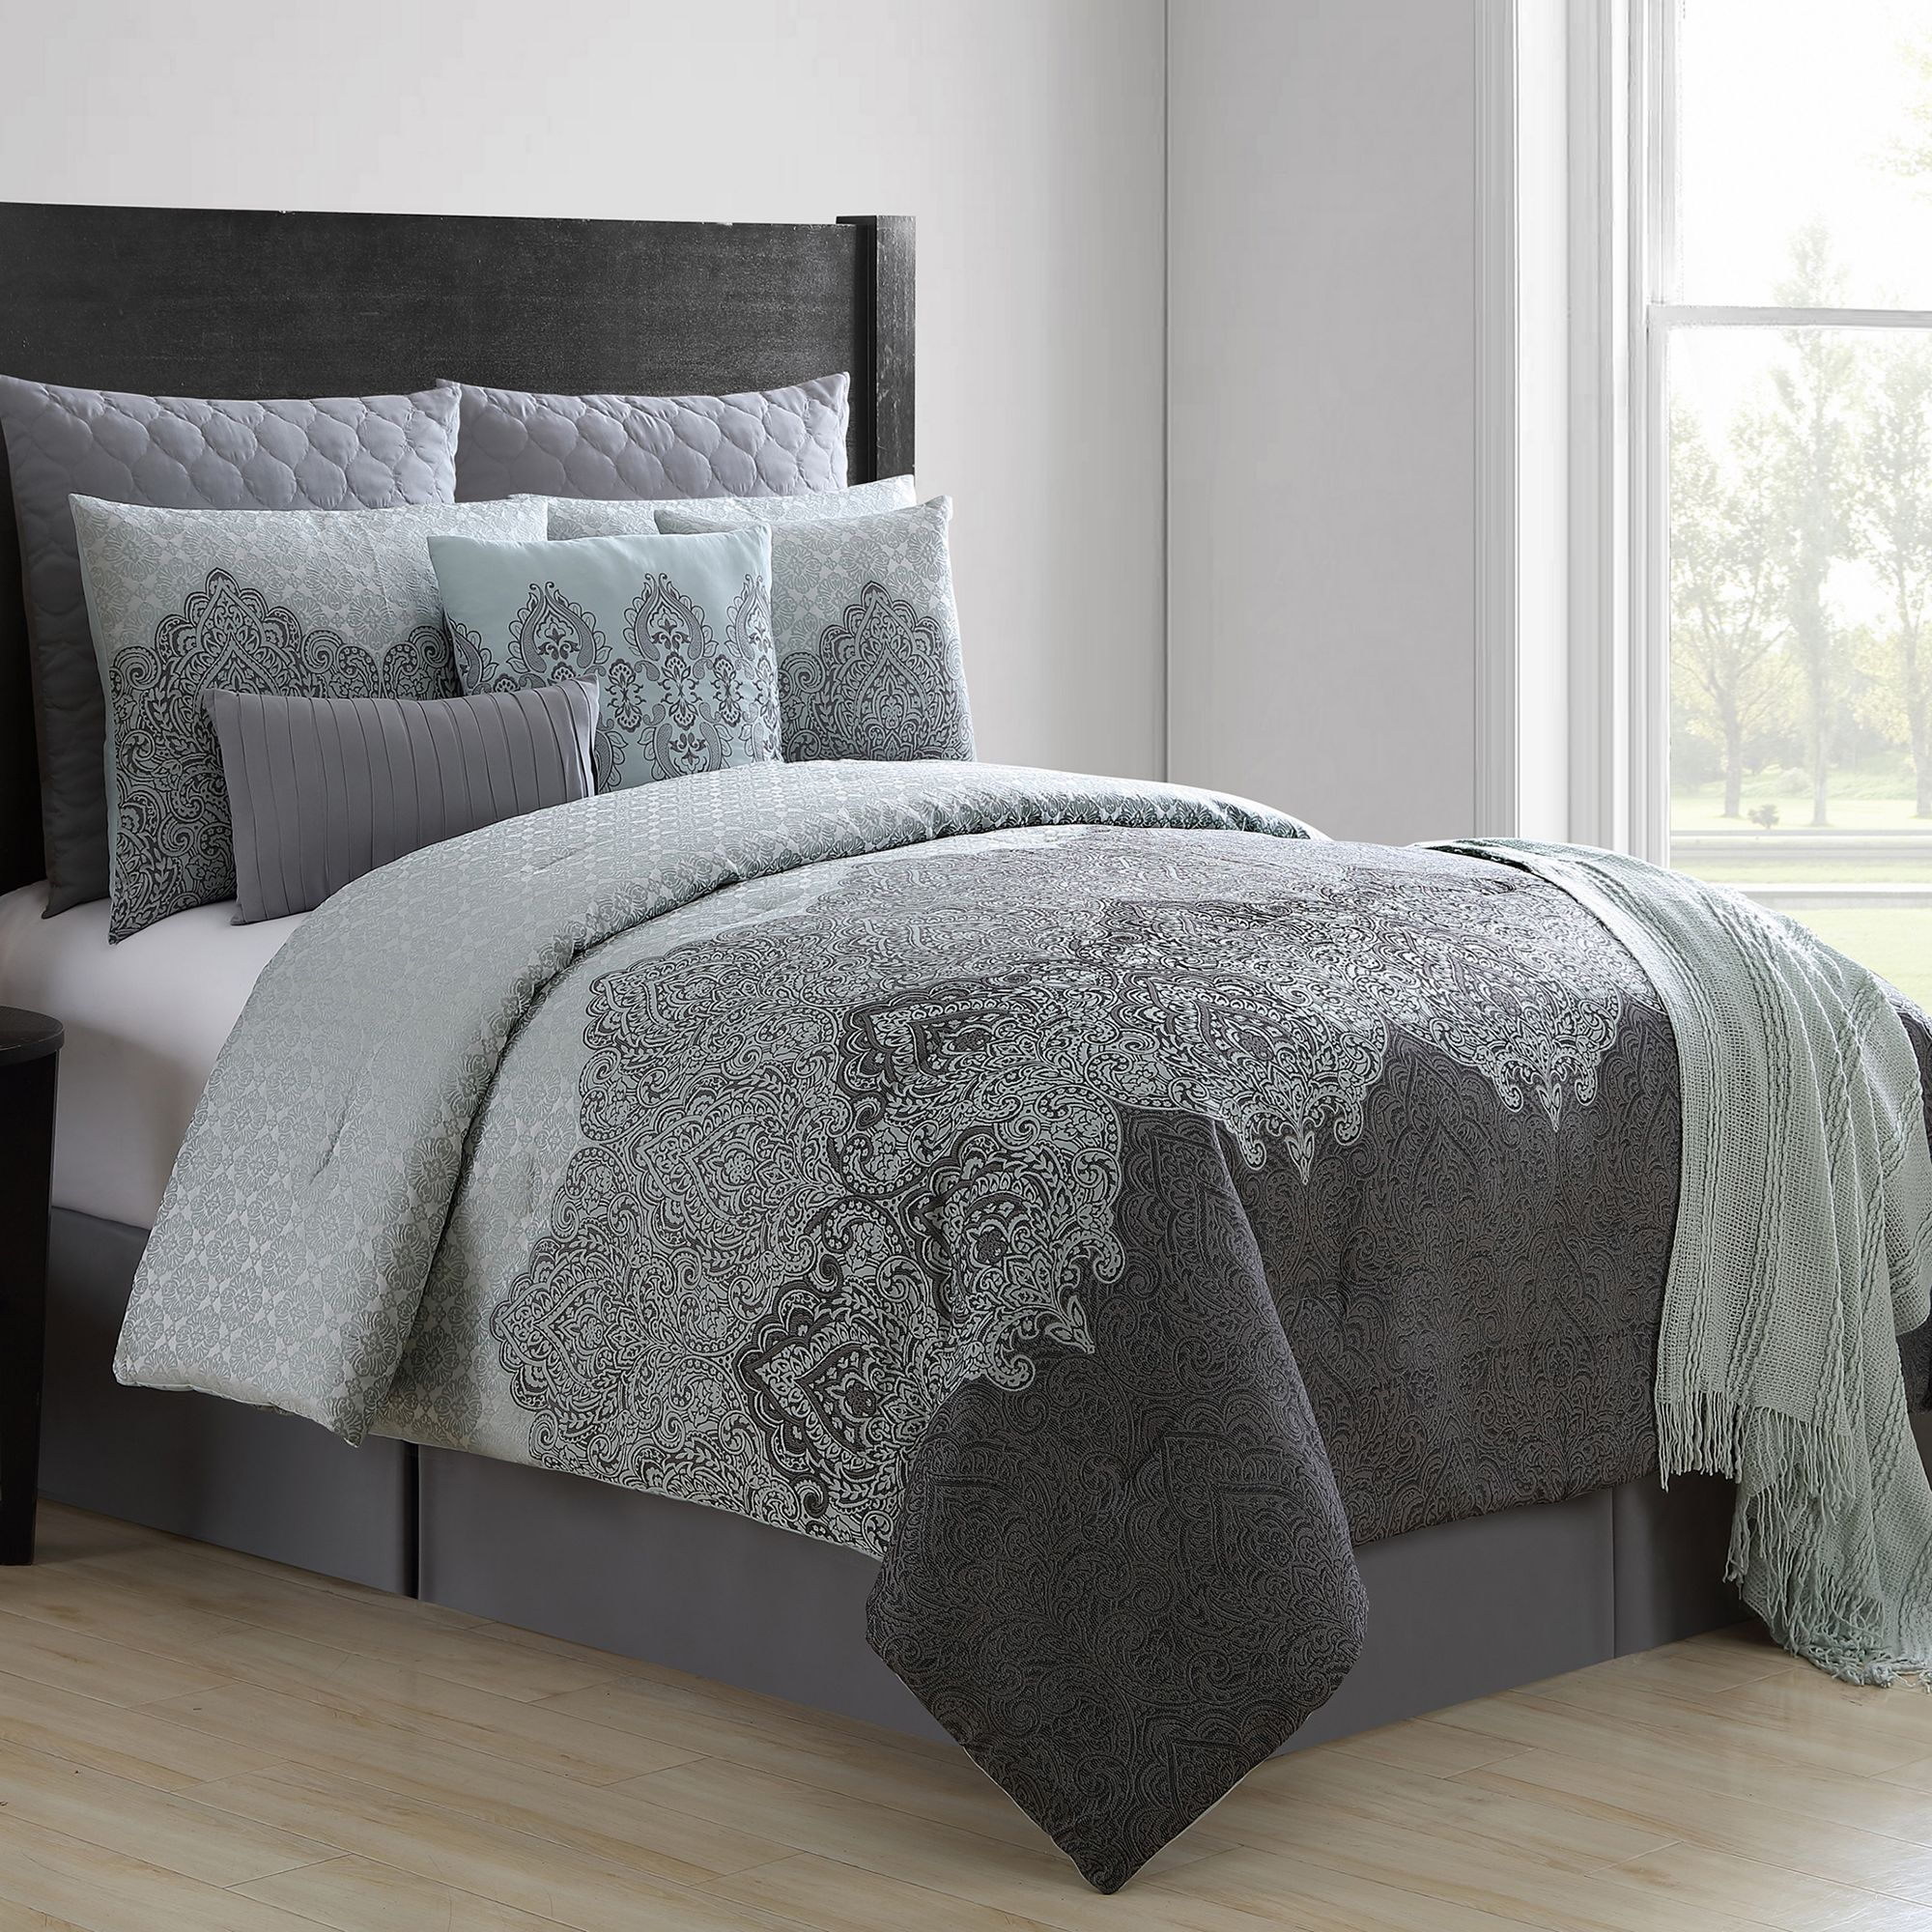 Comforter Sets With Curtains Vcny 10 Piece Matthias Comforter Set Products Bedroom